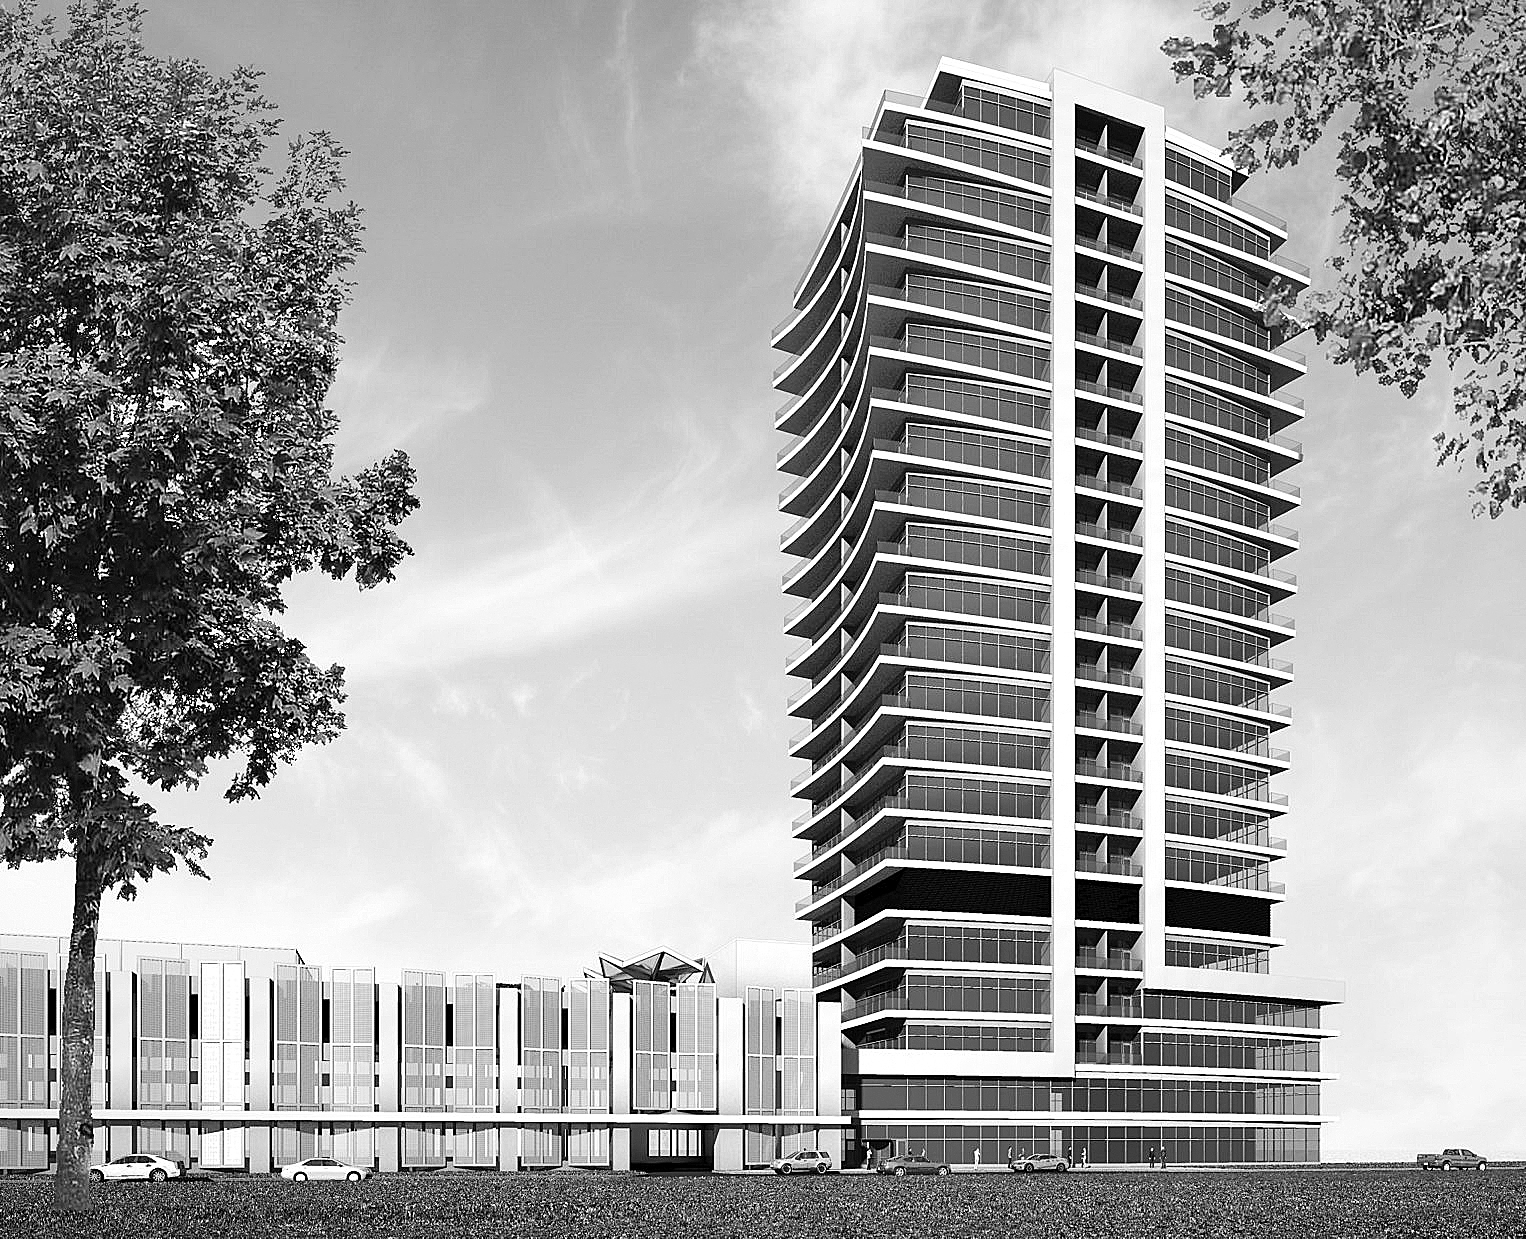 Rendering by Trautman Associates shows the proposed Apartments @ Queen City Landing on Buffalo's Outer Harbor.